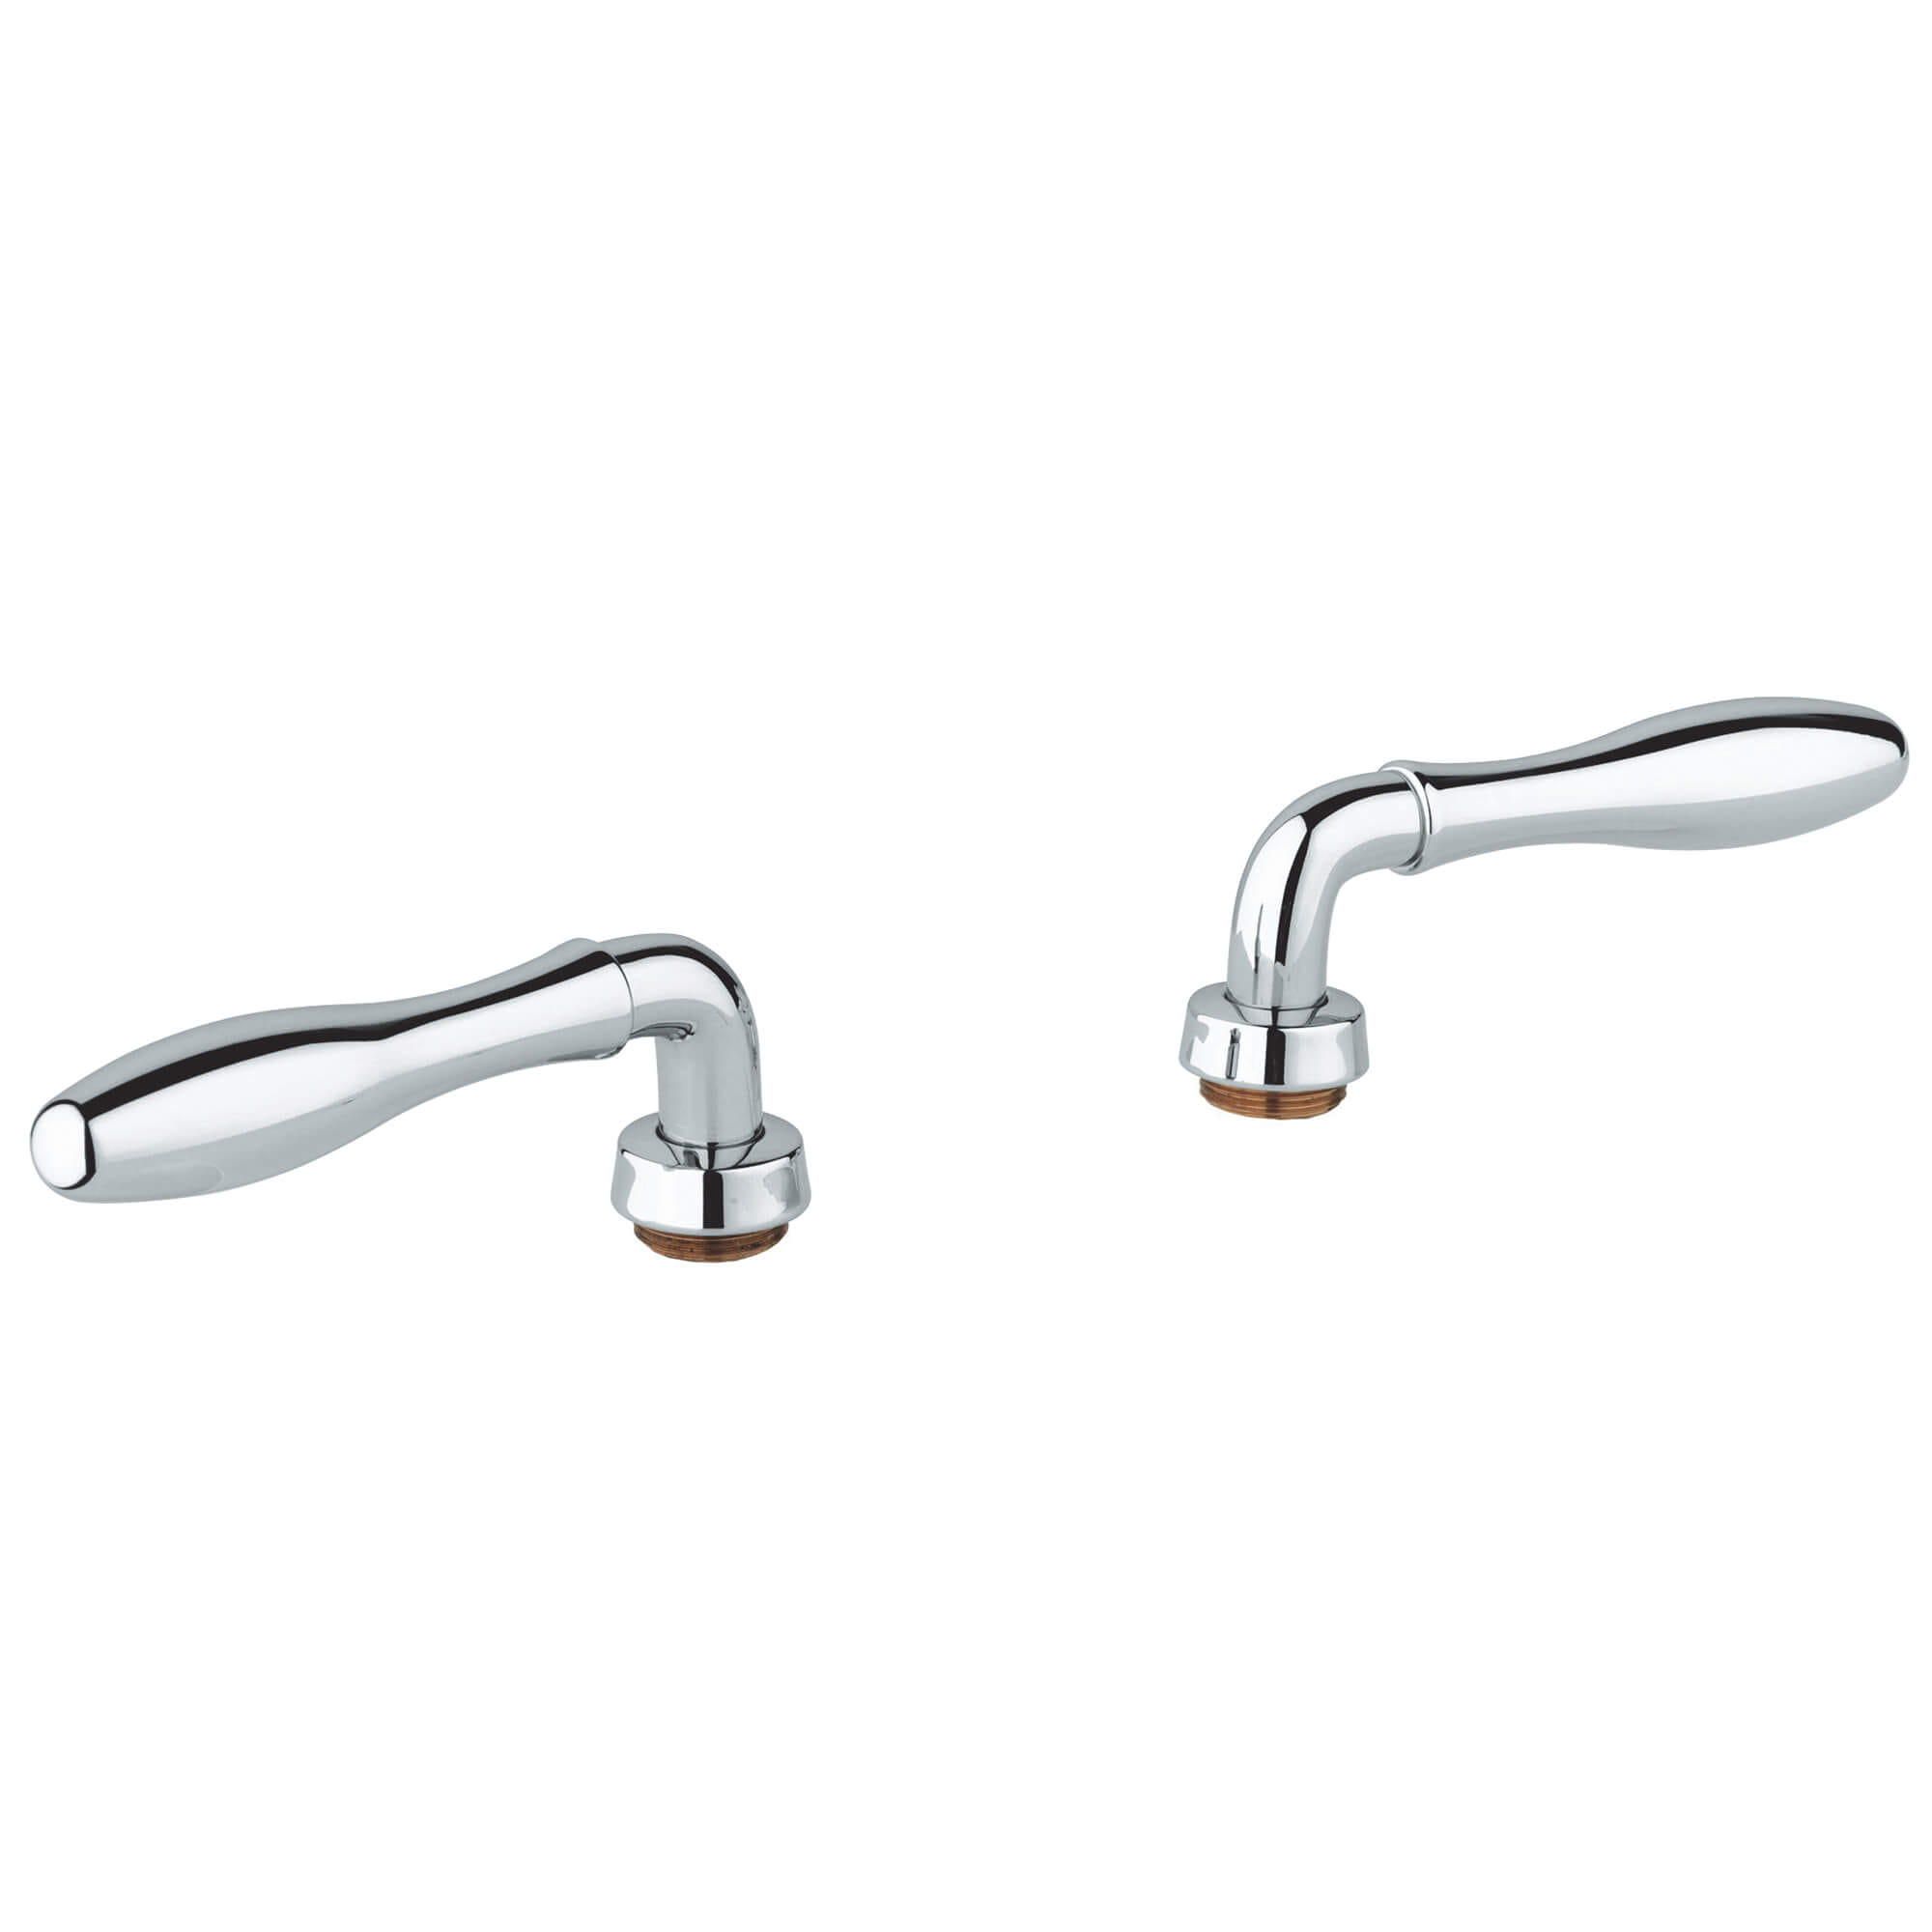 Lever Handles Pair GROHE CHROME